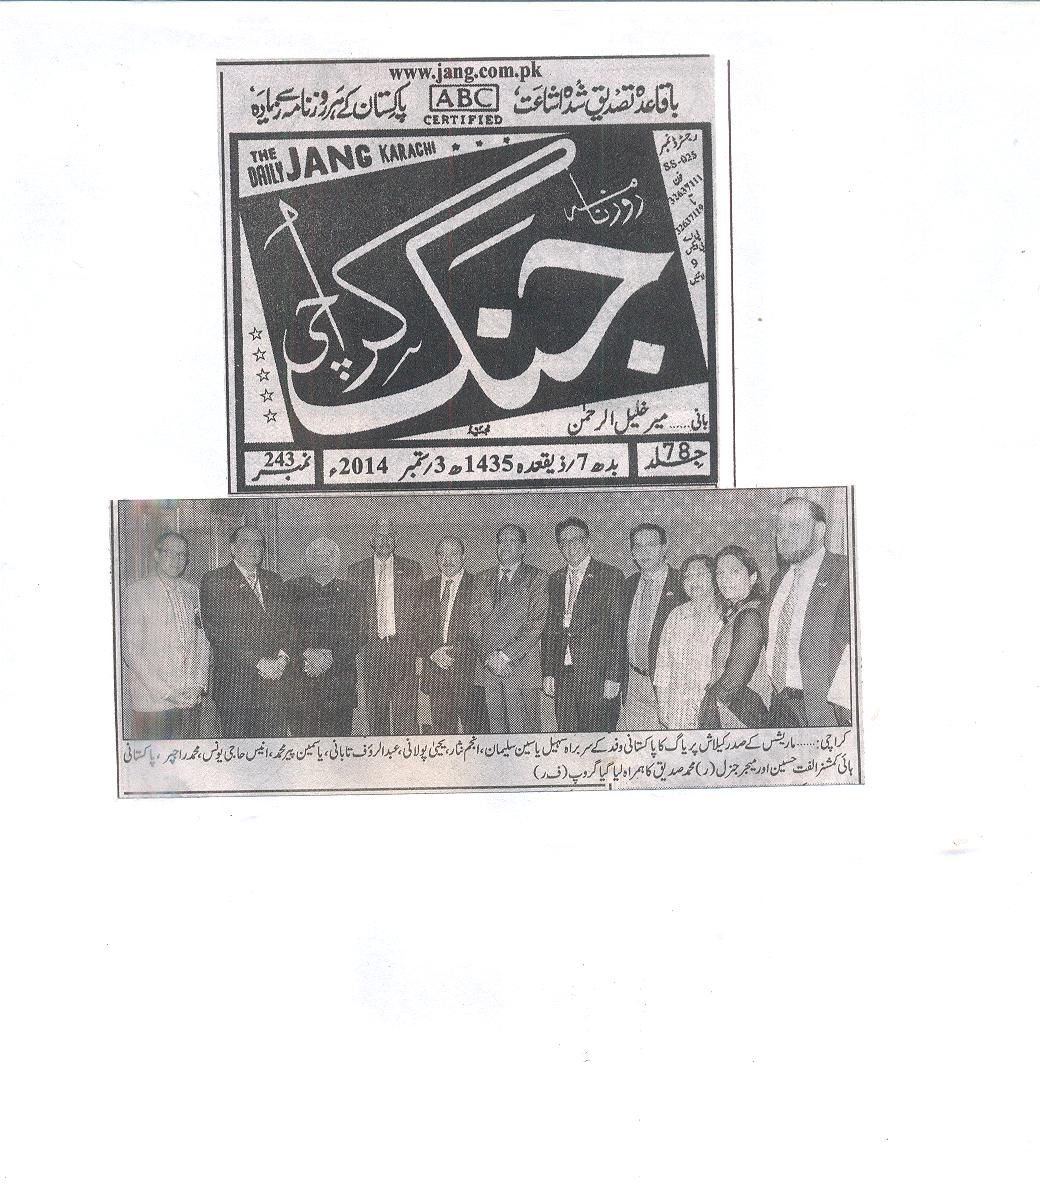 DAILY JANG KARACHI 3RD SEP 2014